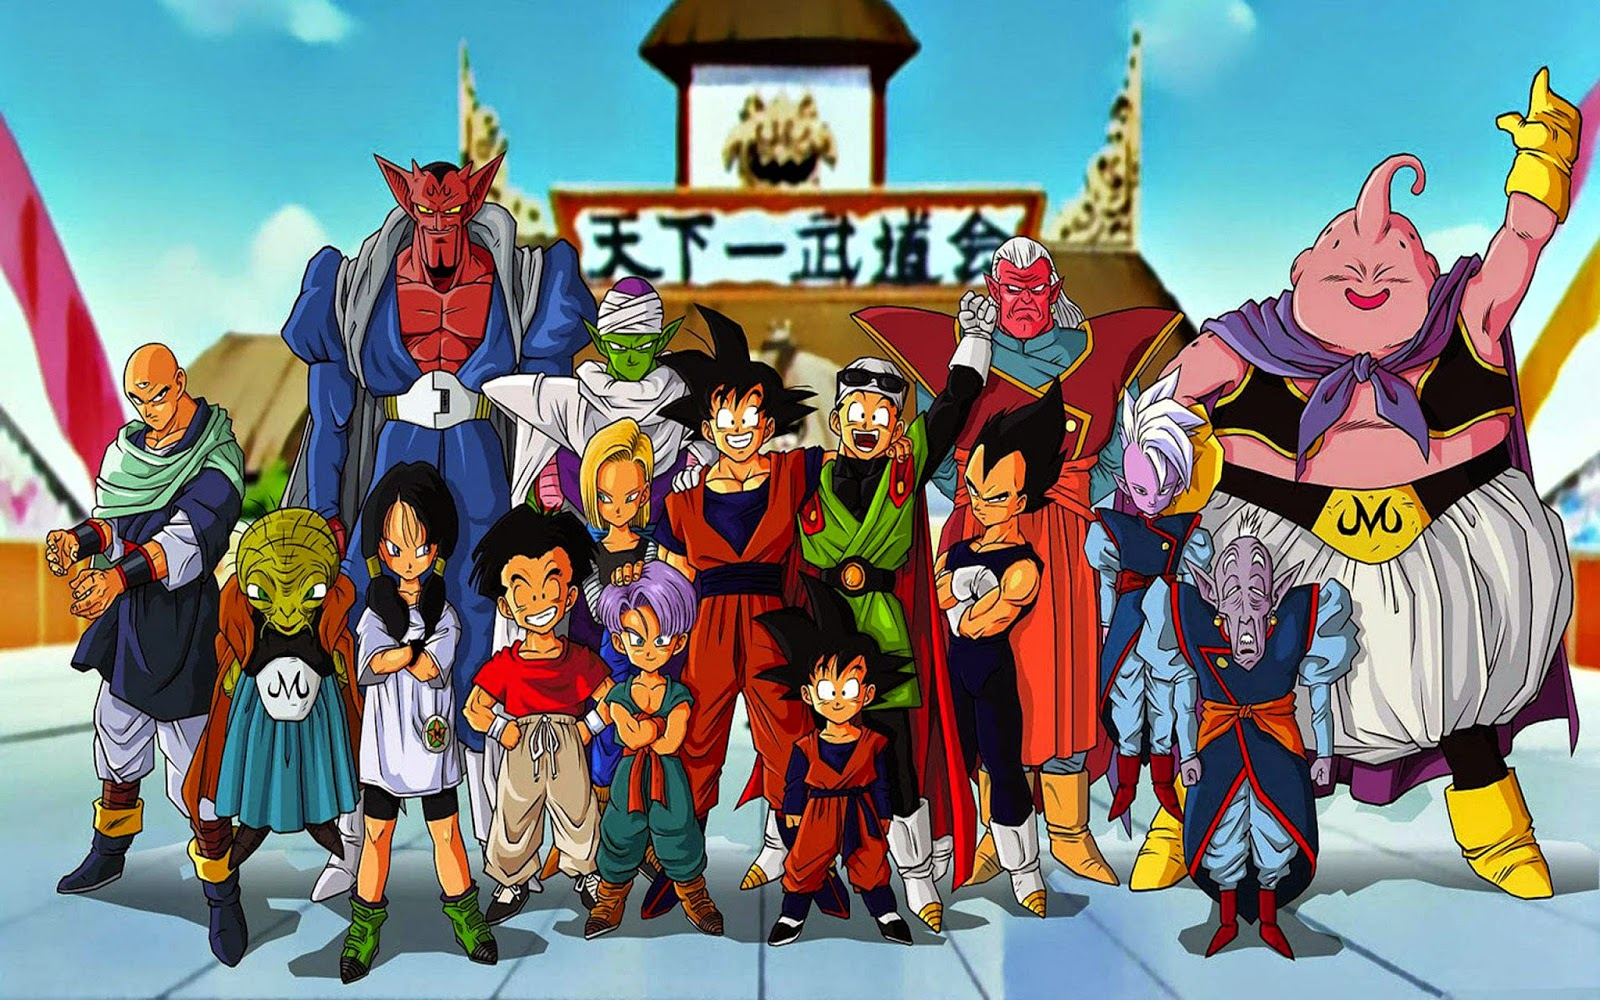 Papel de Parede Anime Dragon Ball Z Personagens dbz wallpaper image hd free